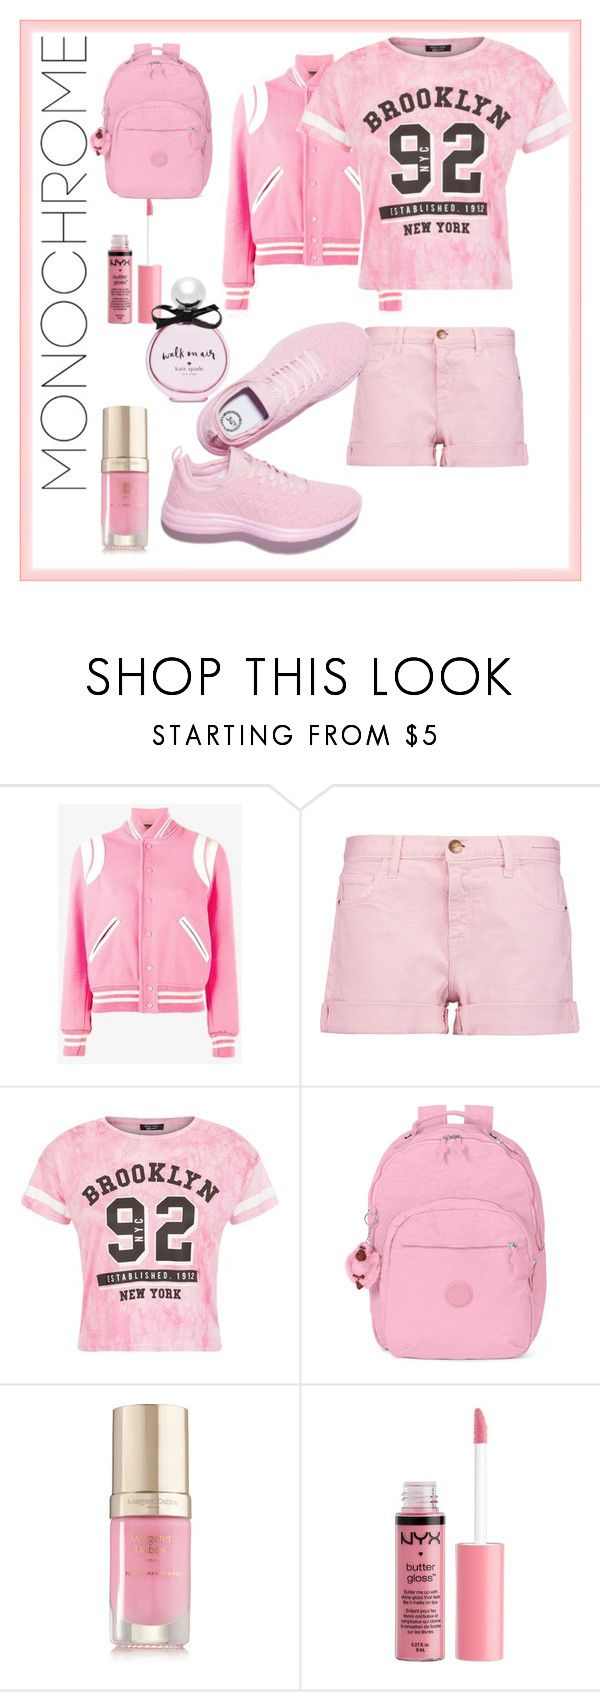 """""""Pretty in Pink"""" by simplyemerald ❤ liked on Polyvore featuring Yves Saint Laurent, Current/Elliott, Kipling, Margaret Dabbs, Charlotte Russe, Kate Spade and monochromepink"""